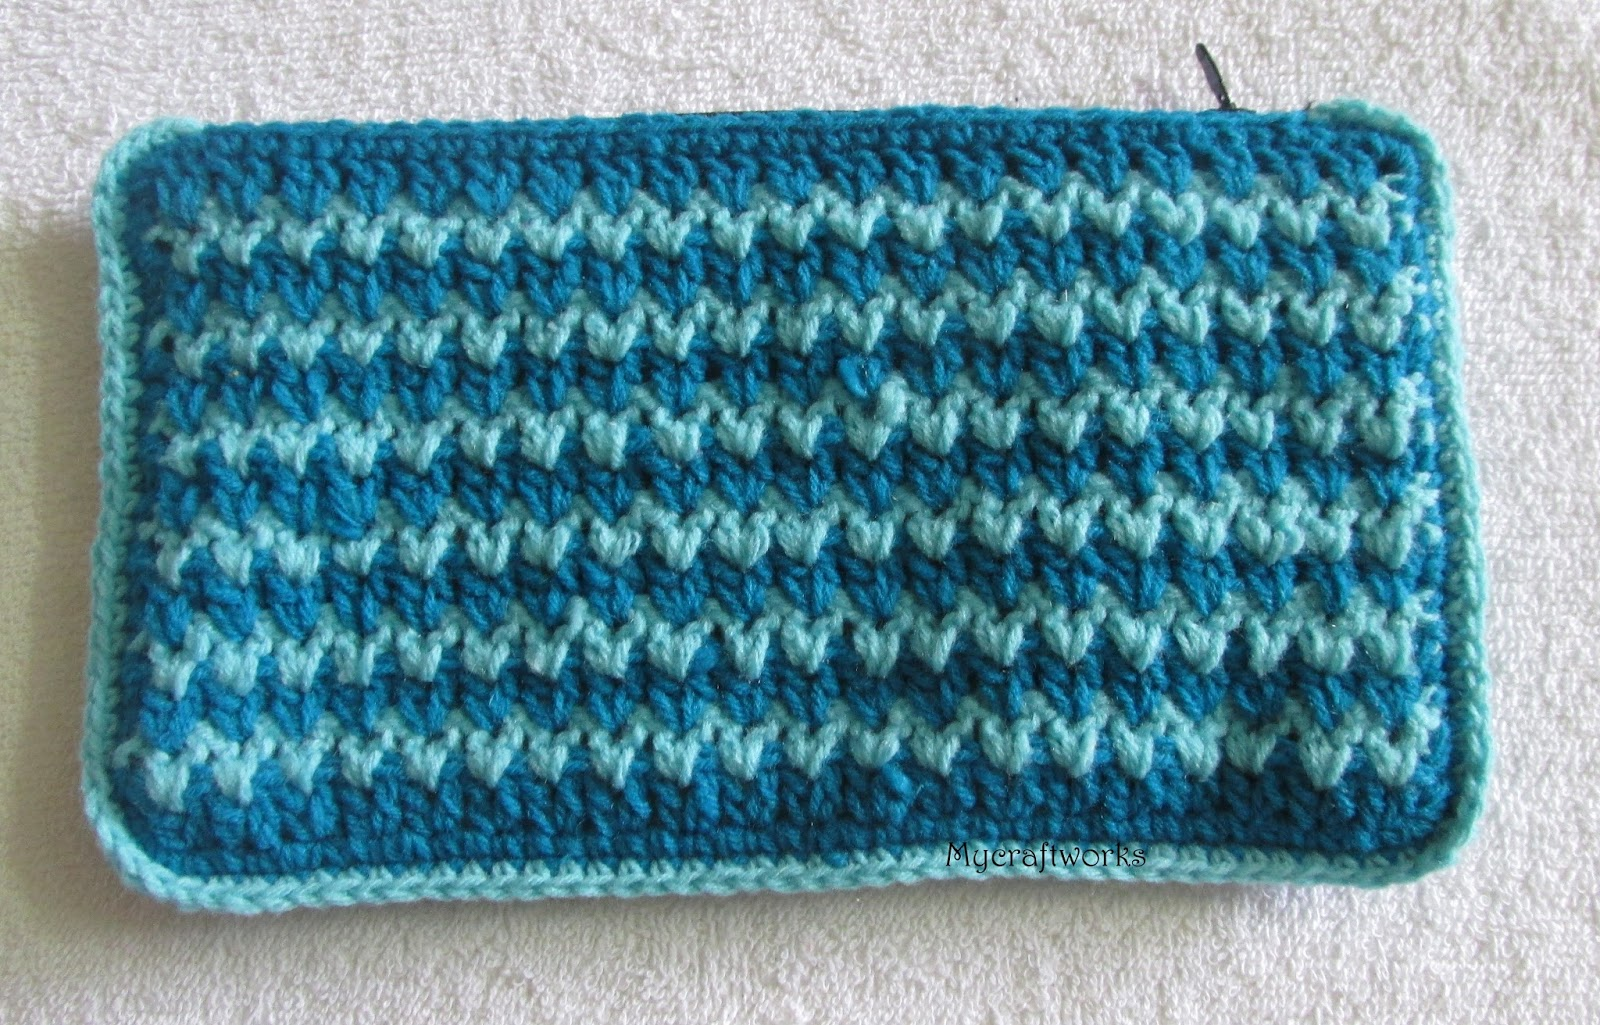 My Craft Works Crochet Samples To Pouches